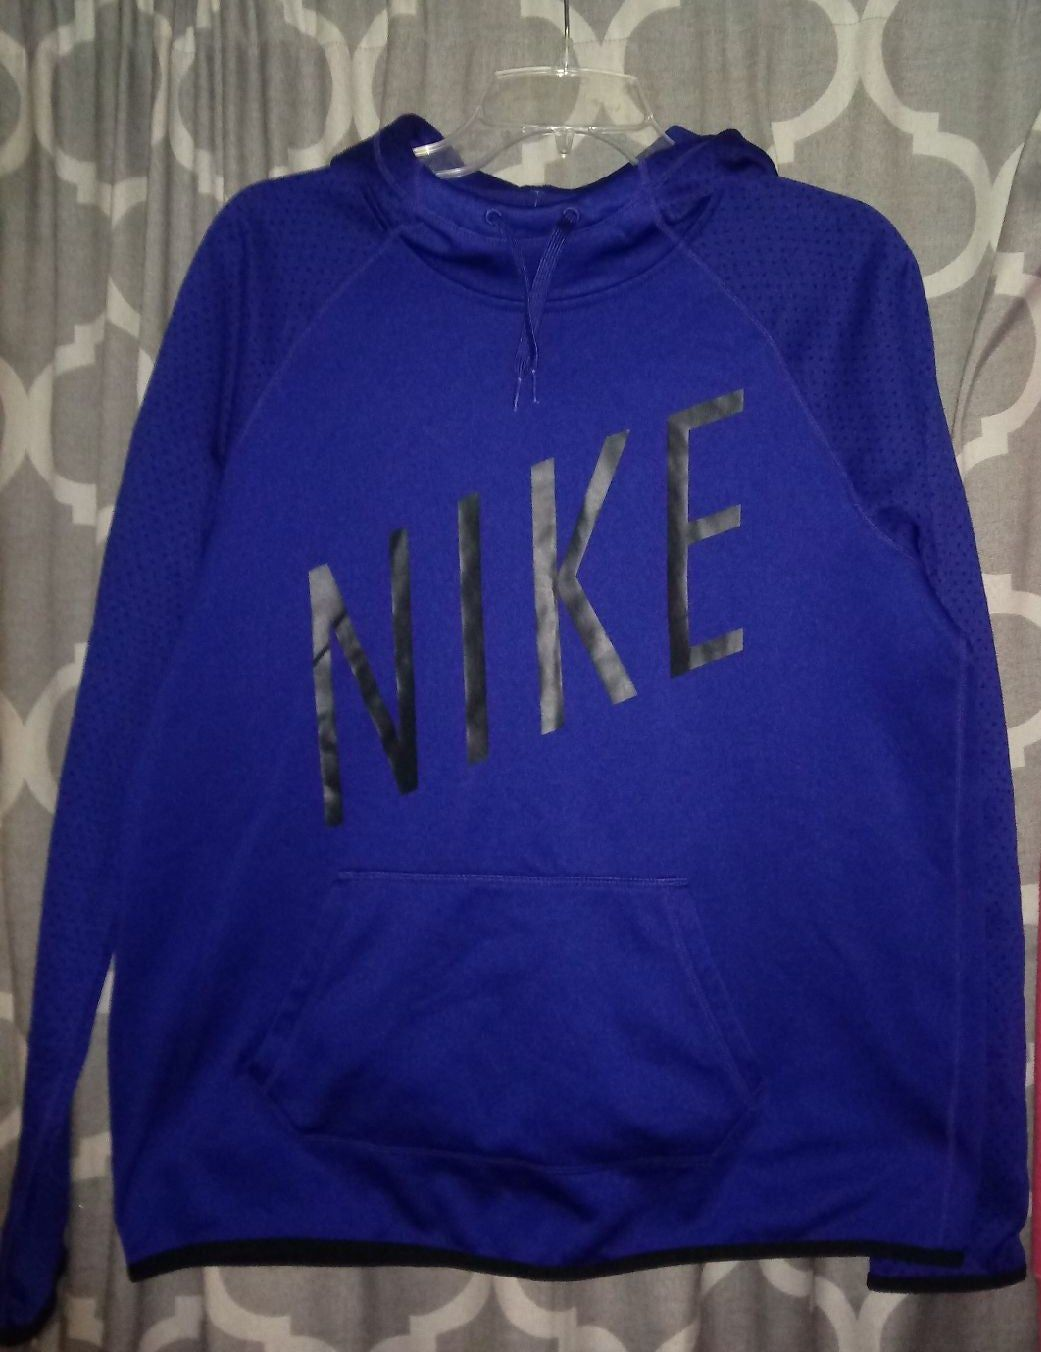 In New Condition No Defects Size Large Ladies Nike Dri Fit Hooded Sweatshirt Free Shipping Purple T Shirts Graphic Sweatshirt Nike Shirts [ 1352 x 1041 Pixel ]